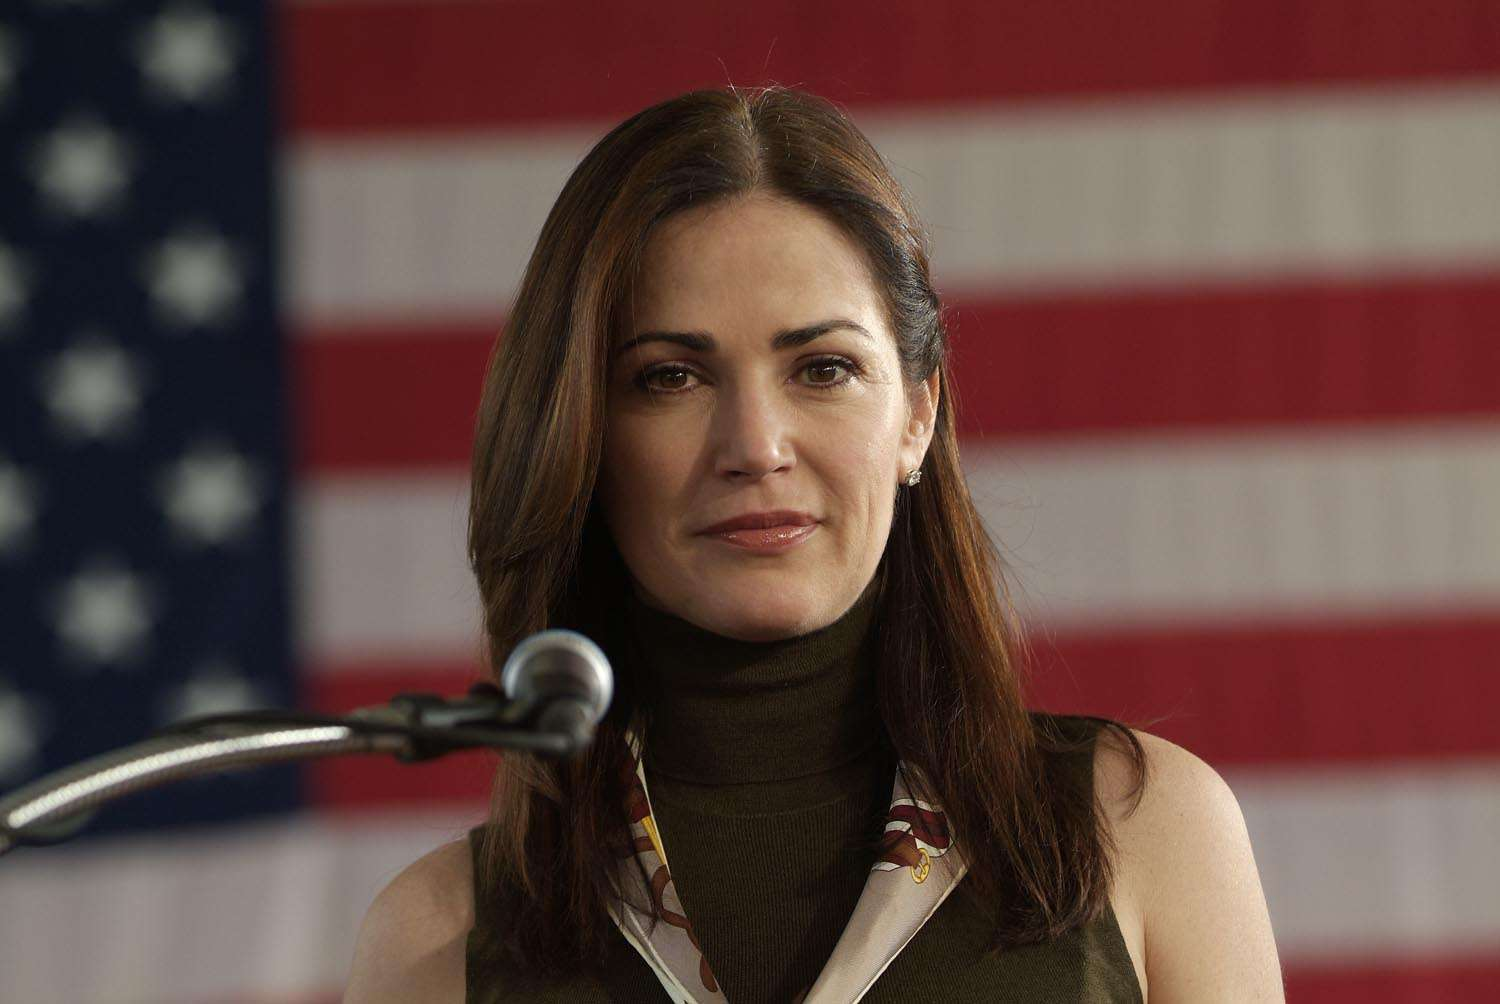 'NYPD's' Kim Delaney stands to make a killing in Beverly ...